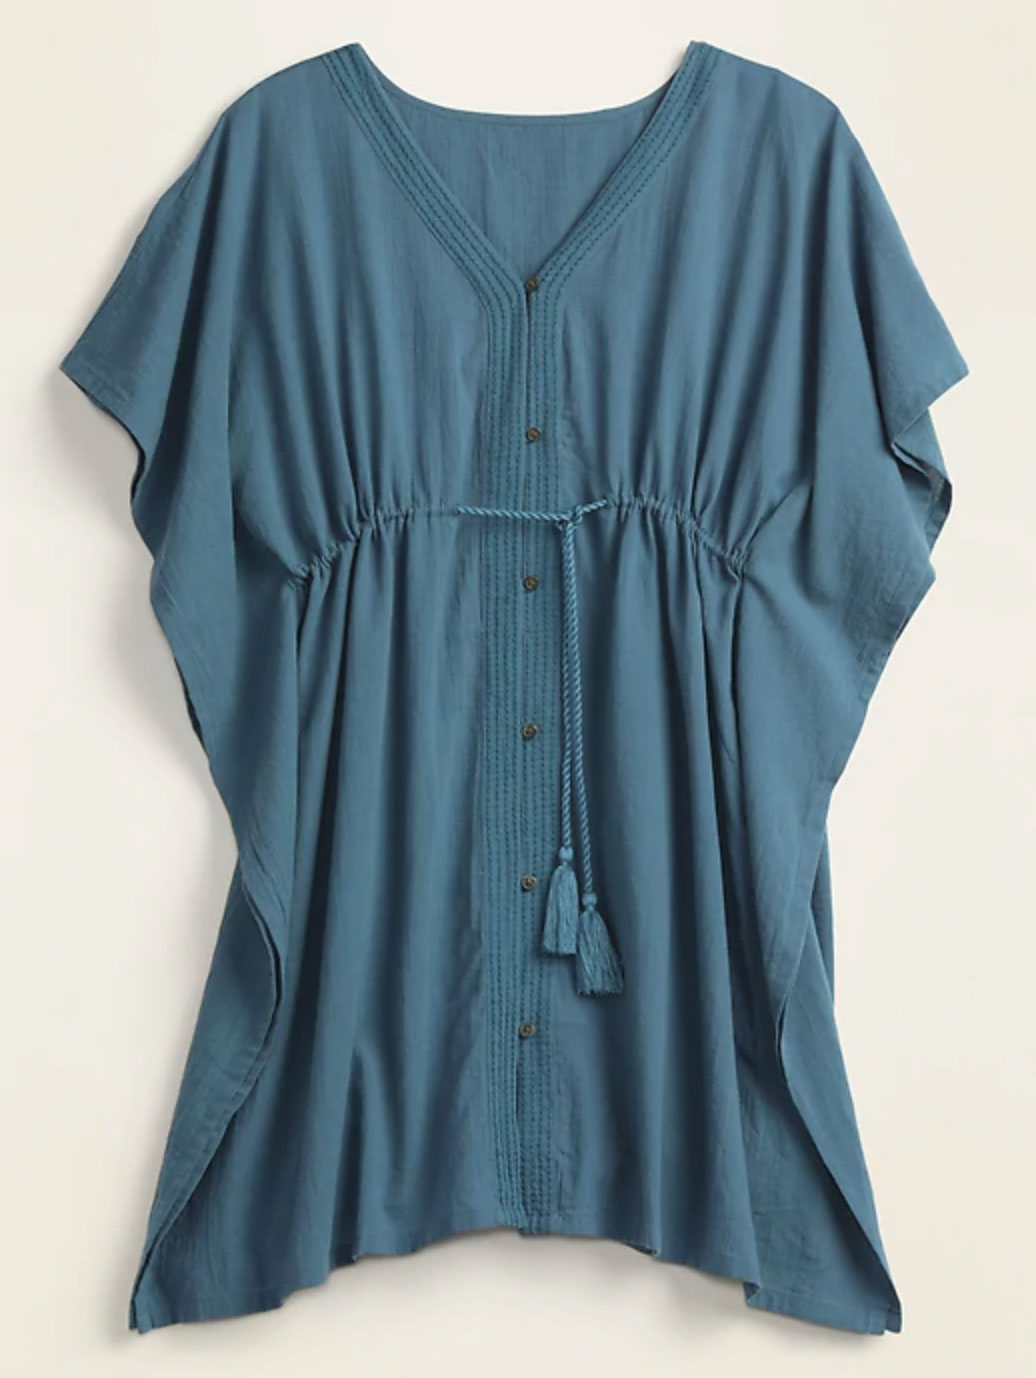 Buy It: $27; oldnavy.gap.com                                       The empire waist flatters while the batwing sleeves keep the breeze coming. Who ordered a poolside cocktail? Over here, please!